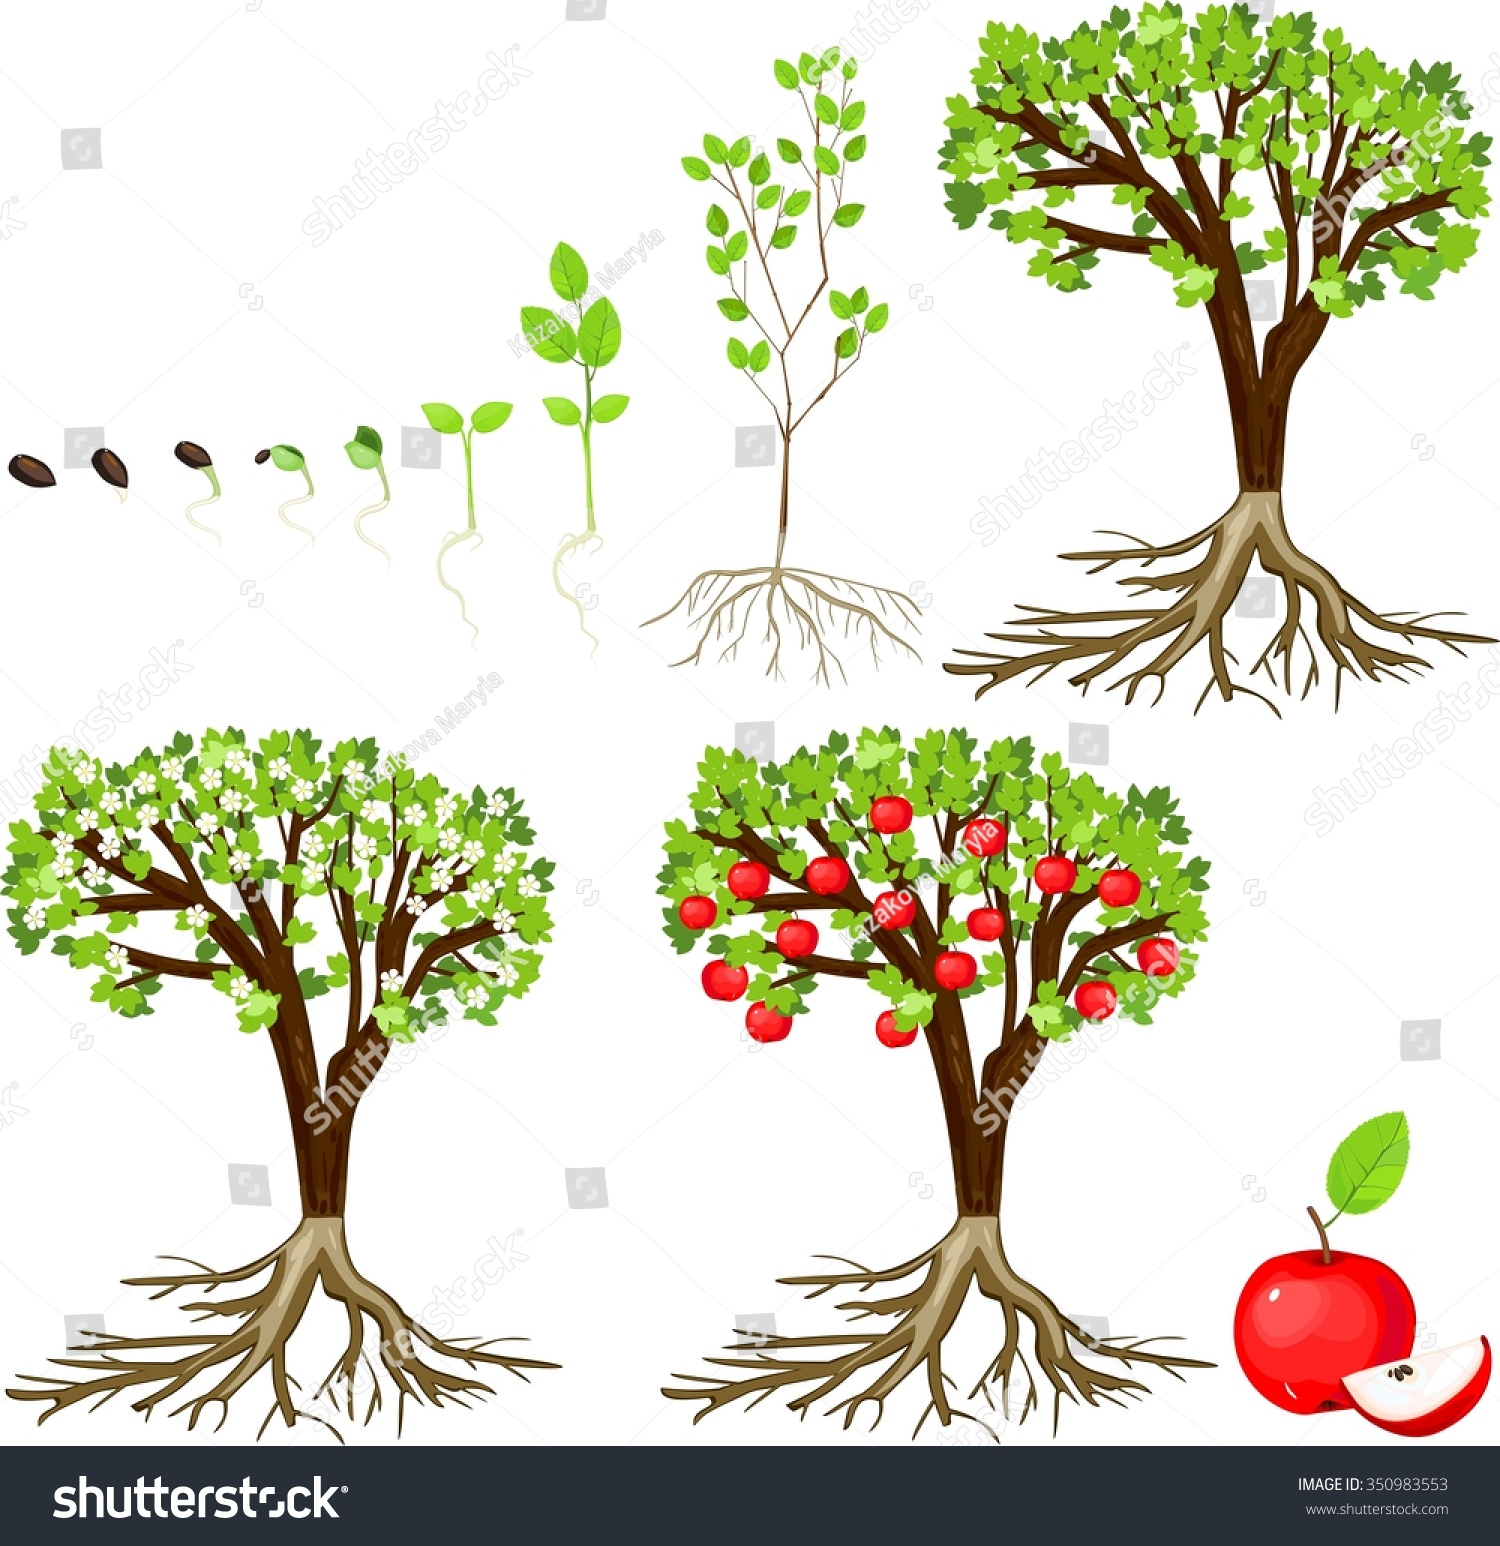 Life Cycle Of Apple Tree Stock Photo Shutterstock